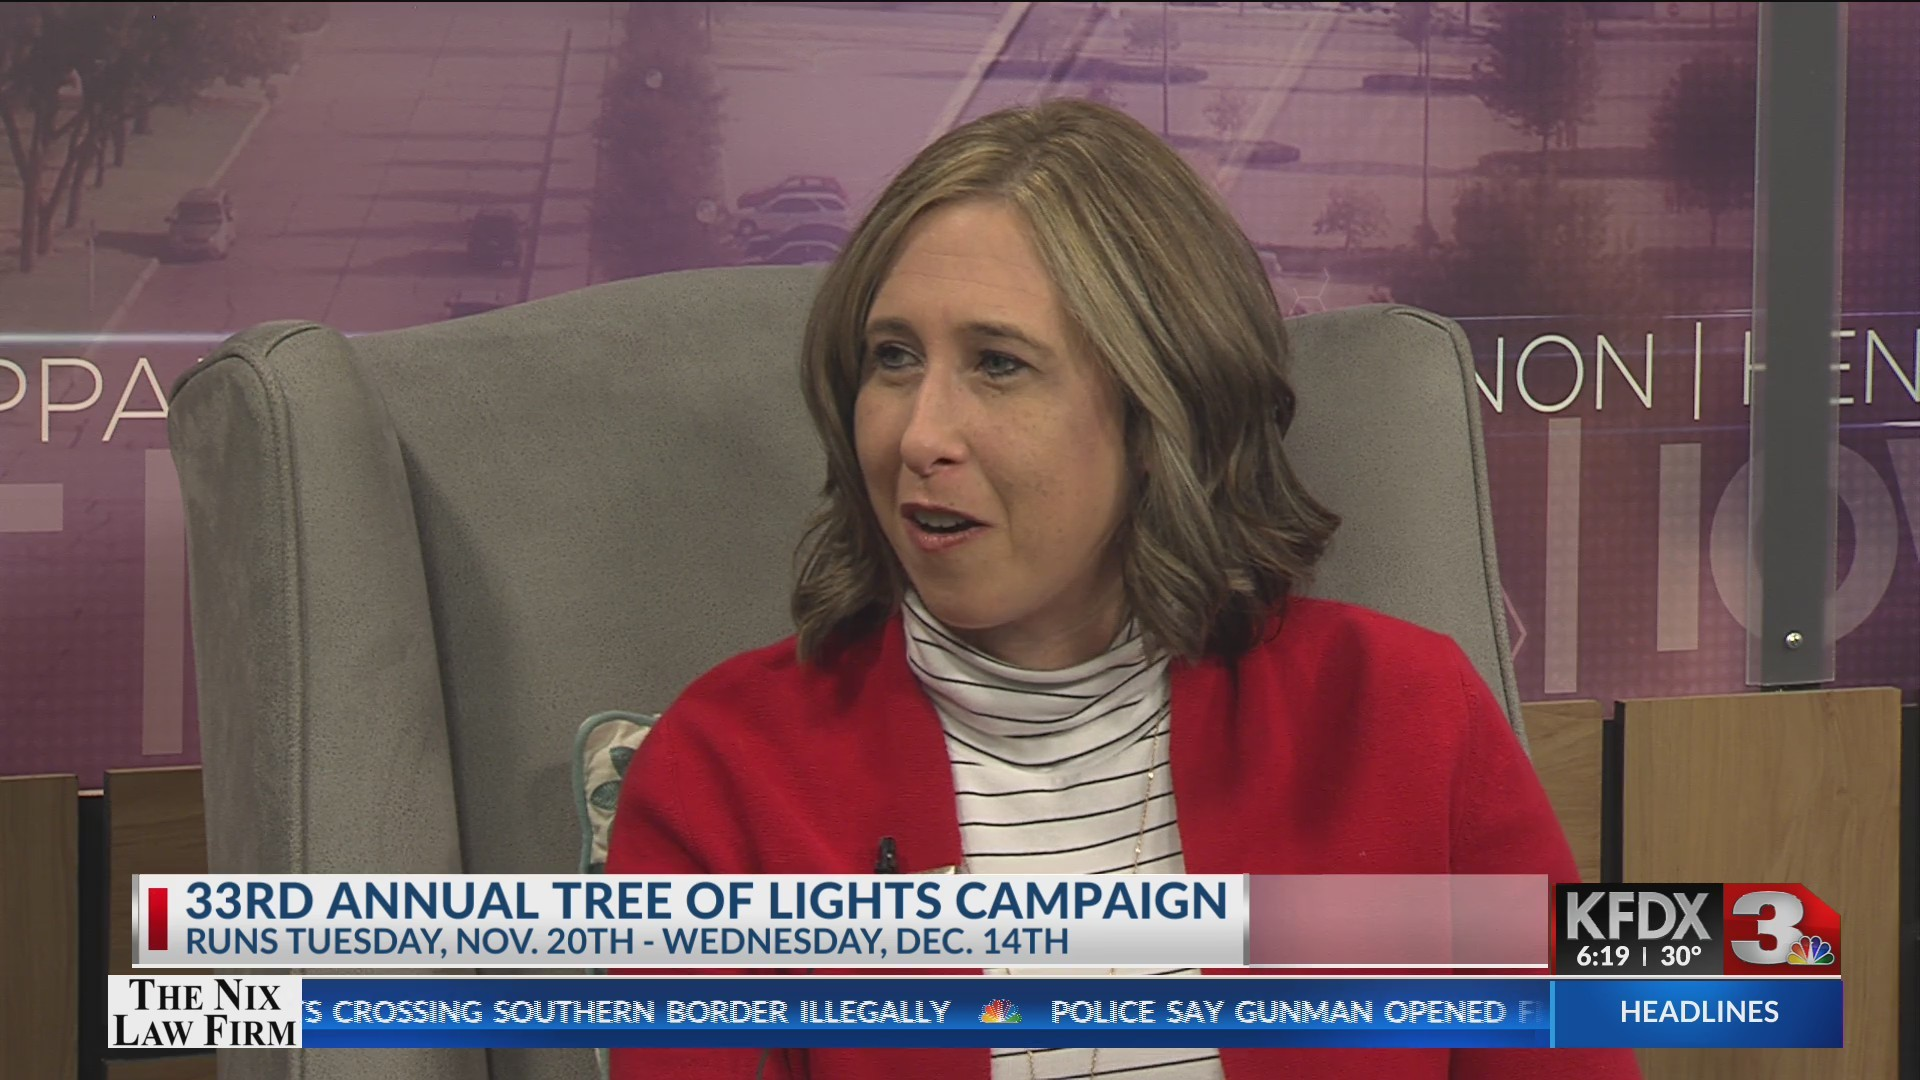 33RD ANNUAL TREE OF LIGHTS CAMPAIGN